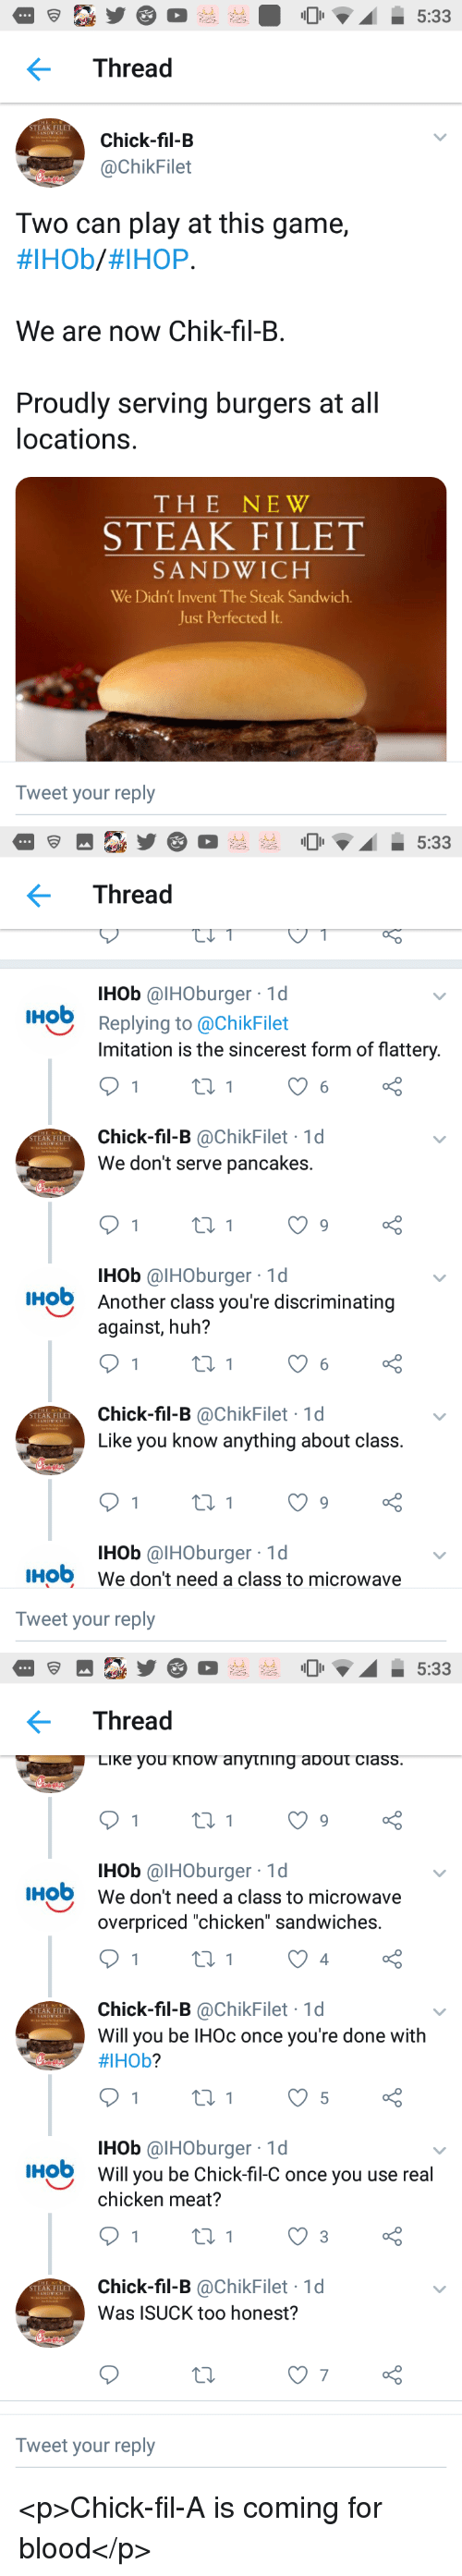 """IHOP: Thread  STEAK FILET  Chick-fil-B  @ChikFilet  Two can play at this game,  #IHOb/#IHOP.  We are now Chik-fil-B.  Proudly serving burgers at all  locations.  THE NEW  STEAK FILET  SANDWICH  We Didn't Invent The Steak Sandwich.  Just Perfected It  Tweet your reply   Thread  IHob @IHOburger 1d  IHob  Replying to @ChikFilet  Imitation is the sincerest form of flattery  Chick-fil-B @ChikFilet 1d  We don't serve pancakes.  STEAK FILET  IHob @IHOburger 1d  Another class you're discriminating  against, huh?  HO  Chick-fil-B @ChikFilet 1d  Like you know anything about class  STEAK FILET  IHob @IHOburger 1d  We don't need a class to microwave  IHO  Tweet your reply   Thread  LiKe you Know anytning about ciass  IHob @IHOburger 1d  We don't need a class to microwave  overpriced """"chicken"""" sandwiches.  IHO  4  Chick-fil-B @ChikFilet 1d  Will you be IHOc once you're done with  #IHOb?  STEAK FILET  IHob @IHOburger 1d  Will you be Chick-fil-C once you use real  chicken meat?  HO  Chick-fil-B @ChikFilet 1d  Was ISUCK too honest?  STEAK FILET  7  Tweet your reply <p>Chick-fil-A is coming for blood</p>"""